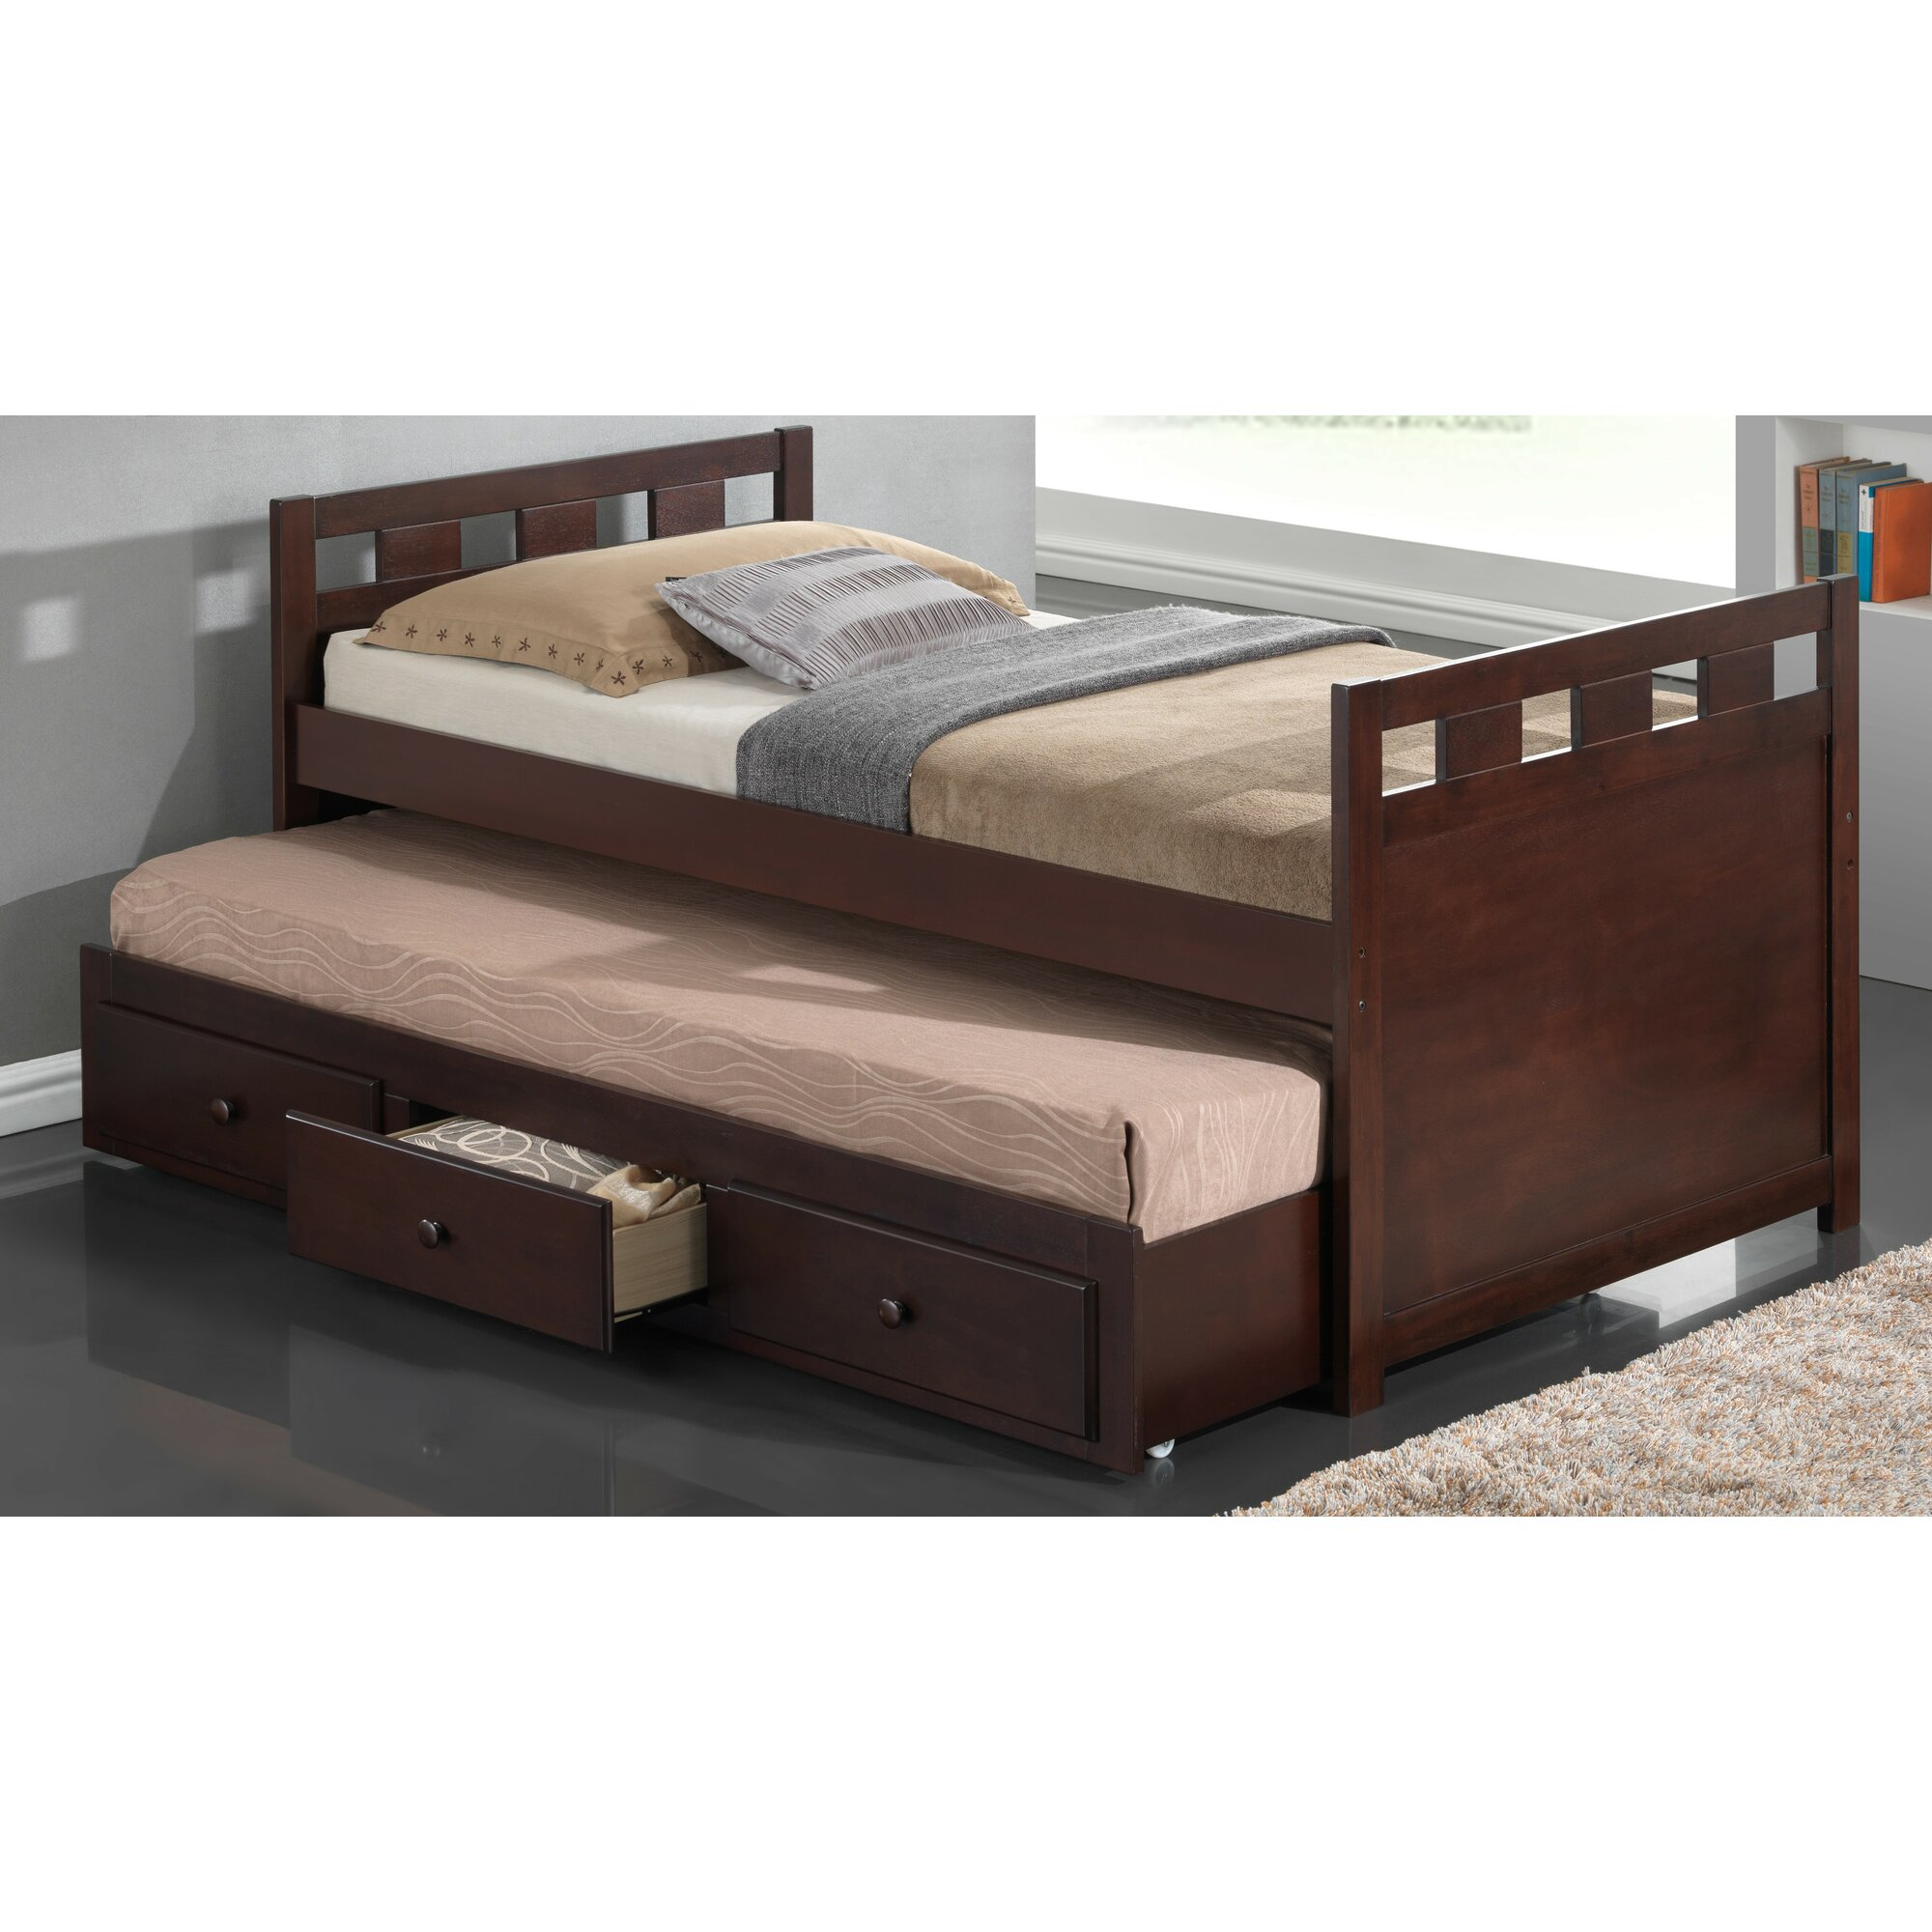 twin captain bed with trundle and storage - Twin Captains Bed